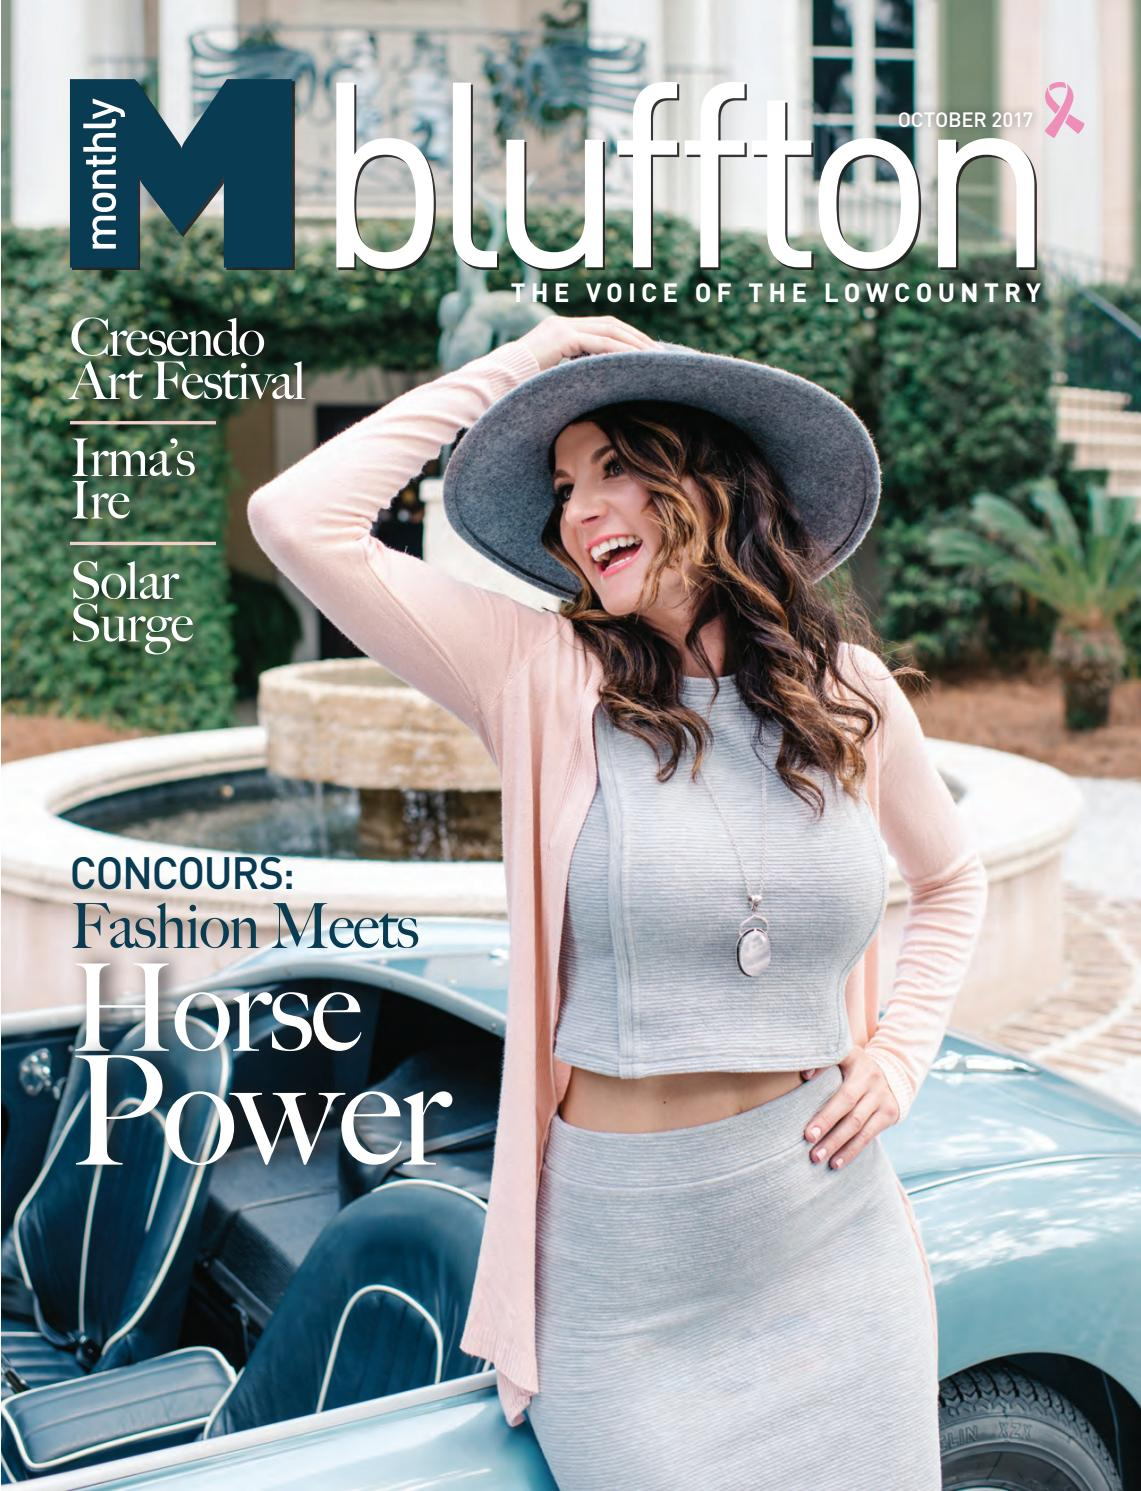 c74a8324138 Bluffton Monthly by Hilton Head Monthly - issuu